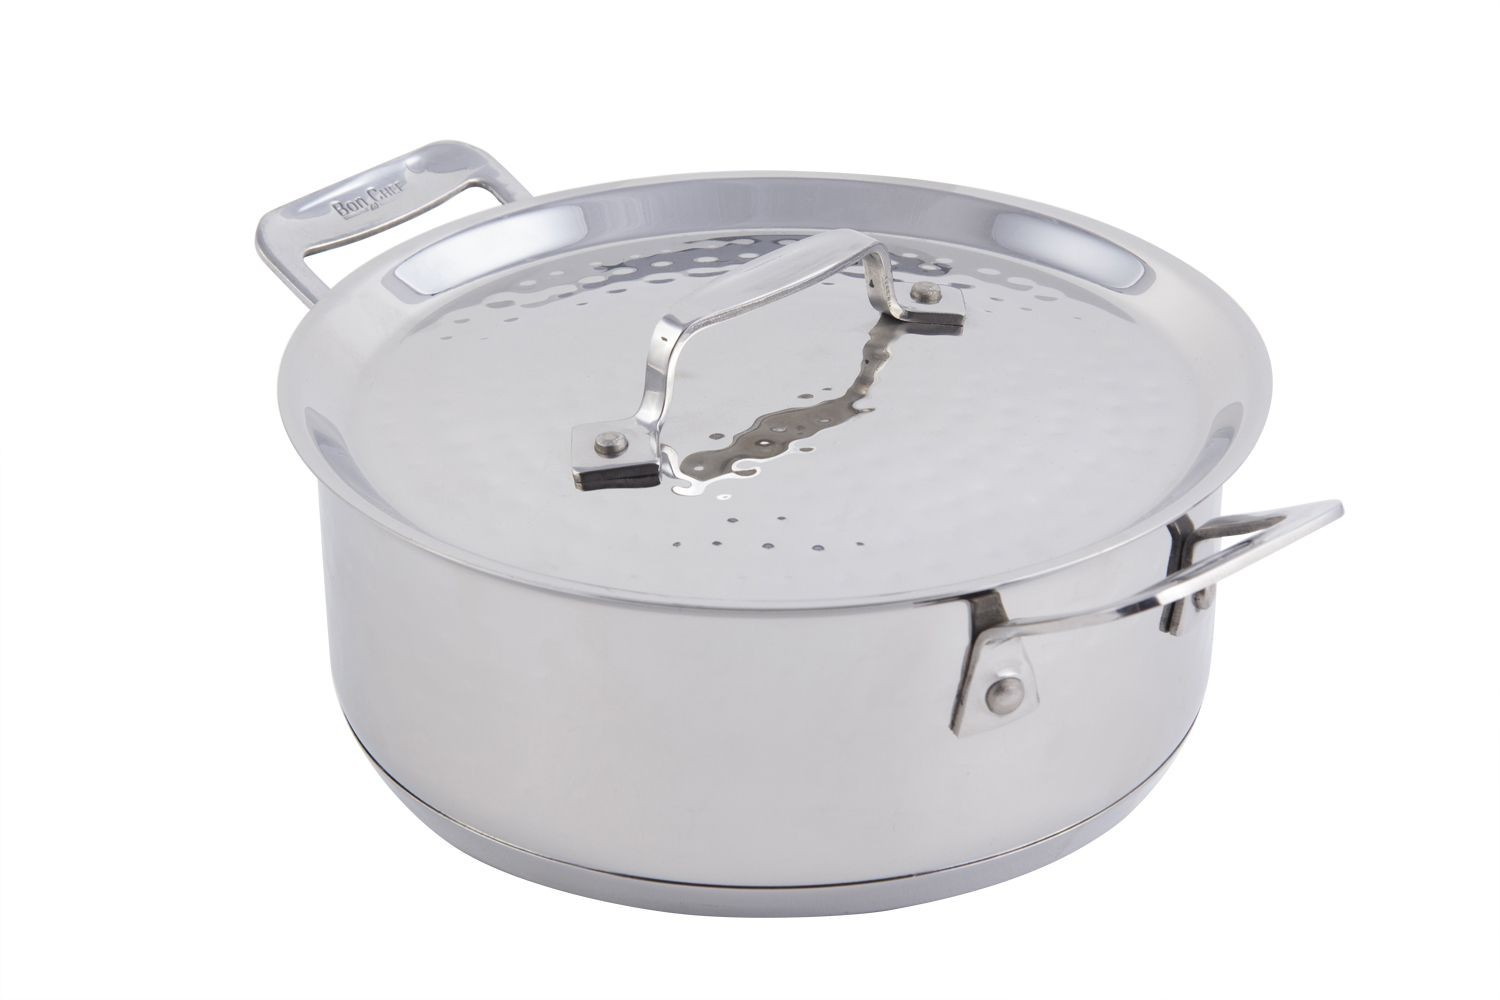 Bon Chef 60000HF Cucina Stainless Steel Casserole Dish with Lid, Hammered Finish, 3 Qt.